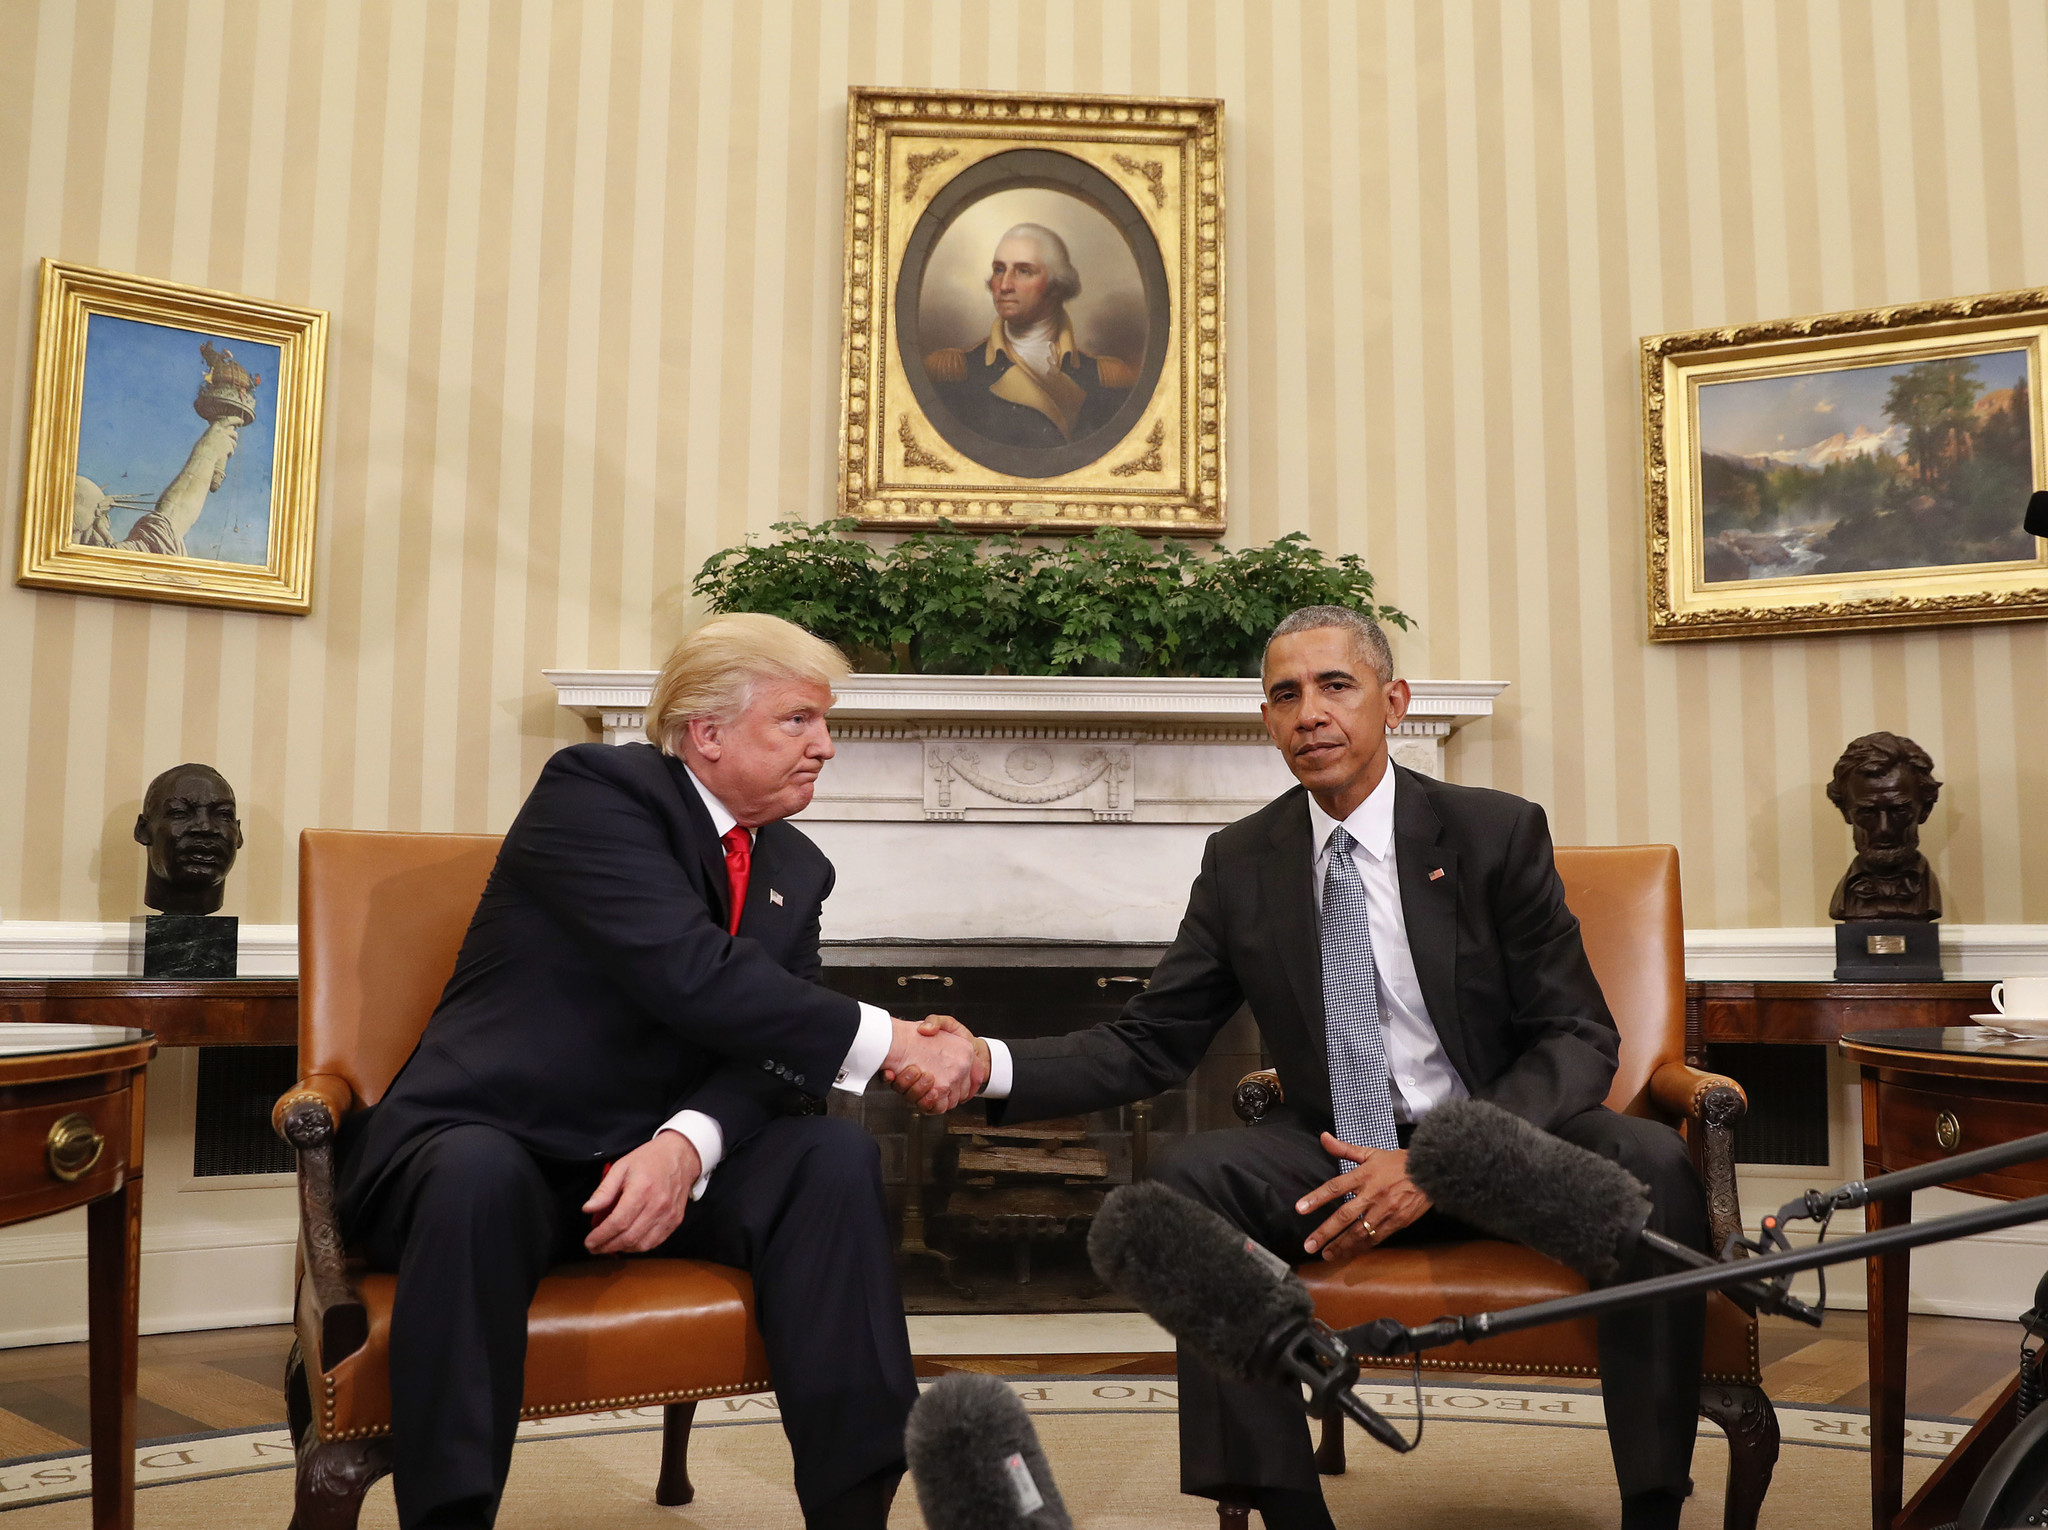 President Obama and then-President-elect Donald Trump shake hands following a meeting in the Oval Office in November.